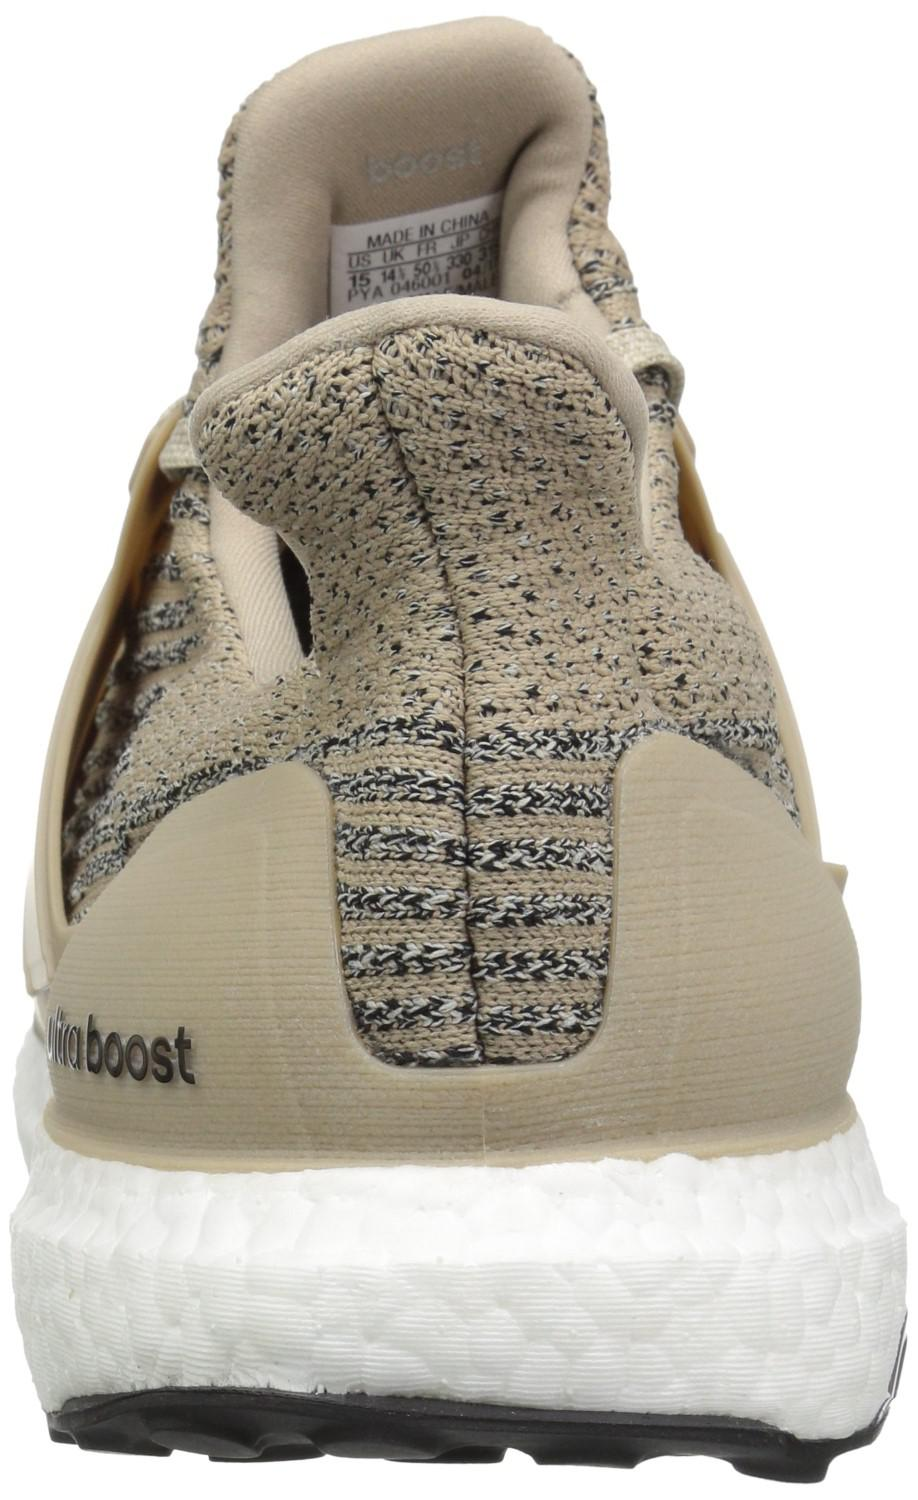 f61fca6f2409d Lyst - adidas Cg3039 Ultraboost Trakha Cbrown in Natural for Men